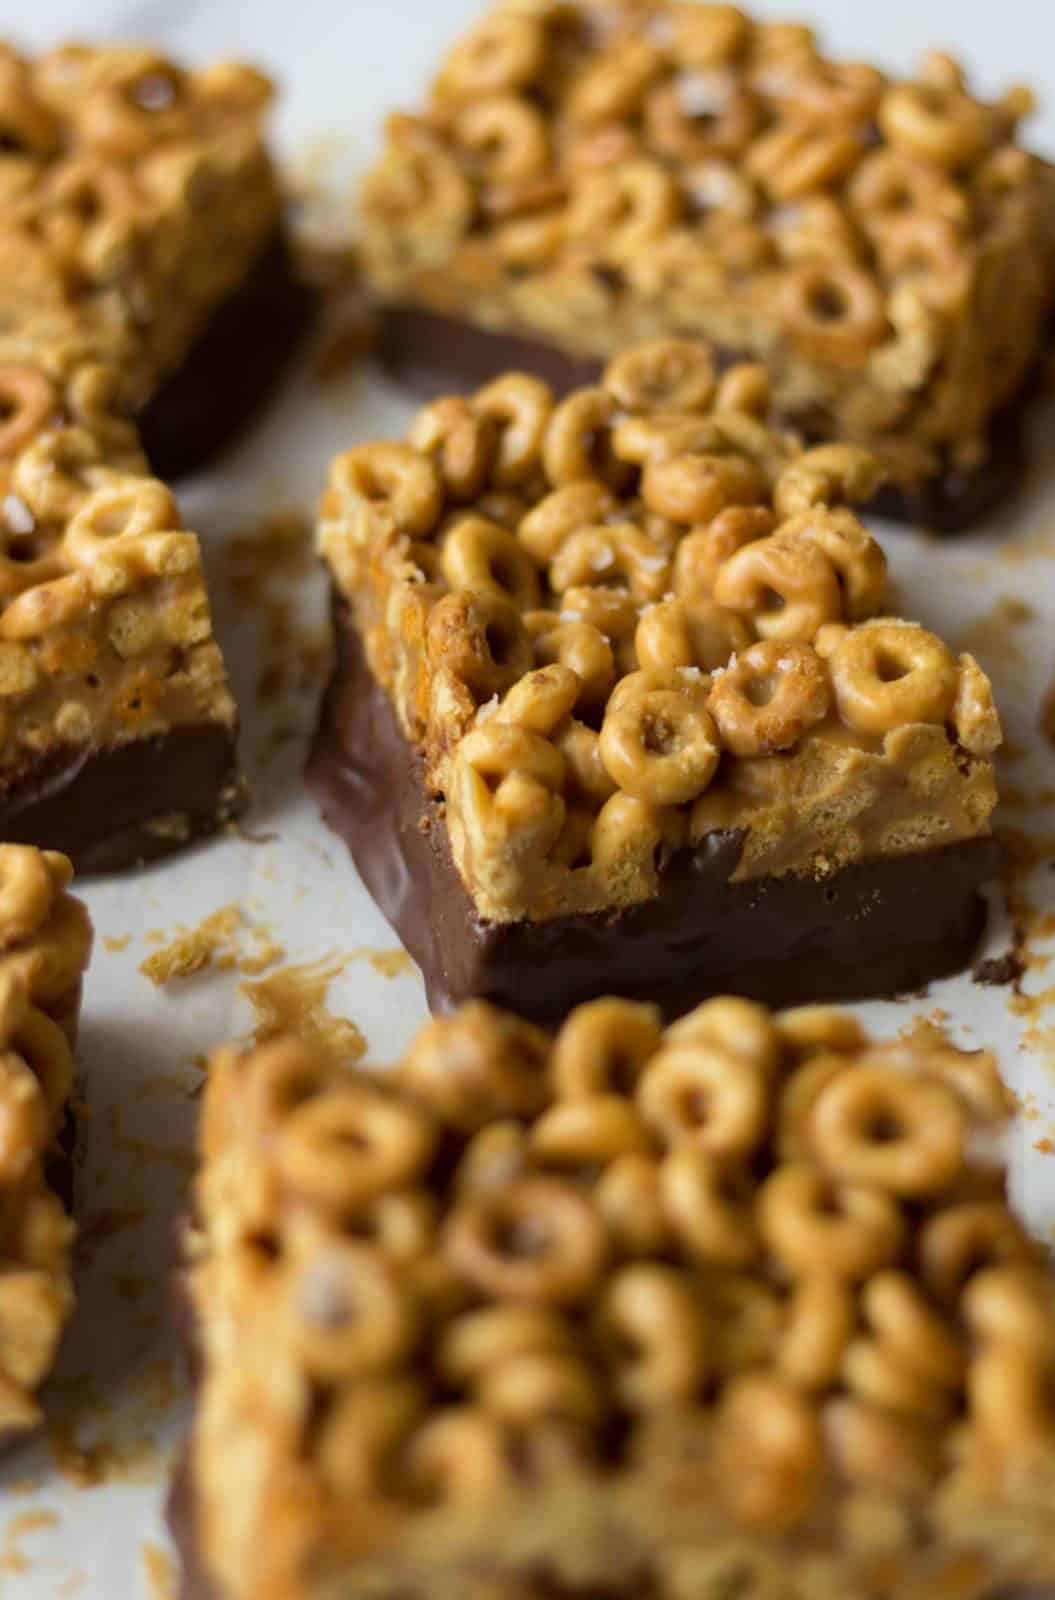 Angle shot of Chocolate-Dipped Peanut Butter Cereal Bars